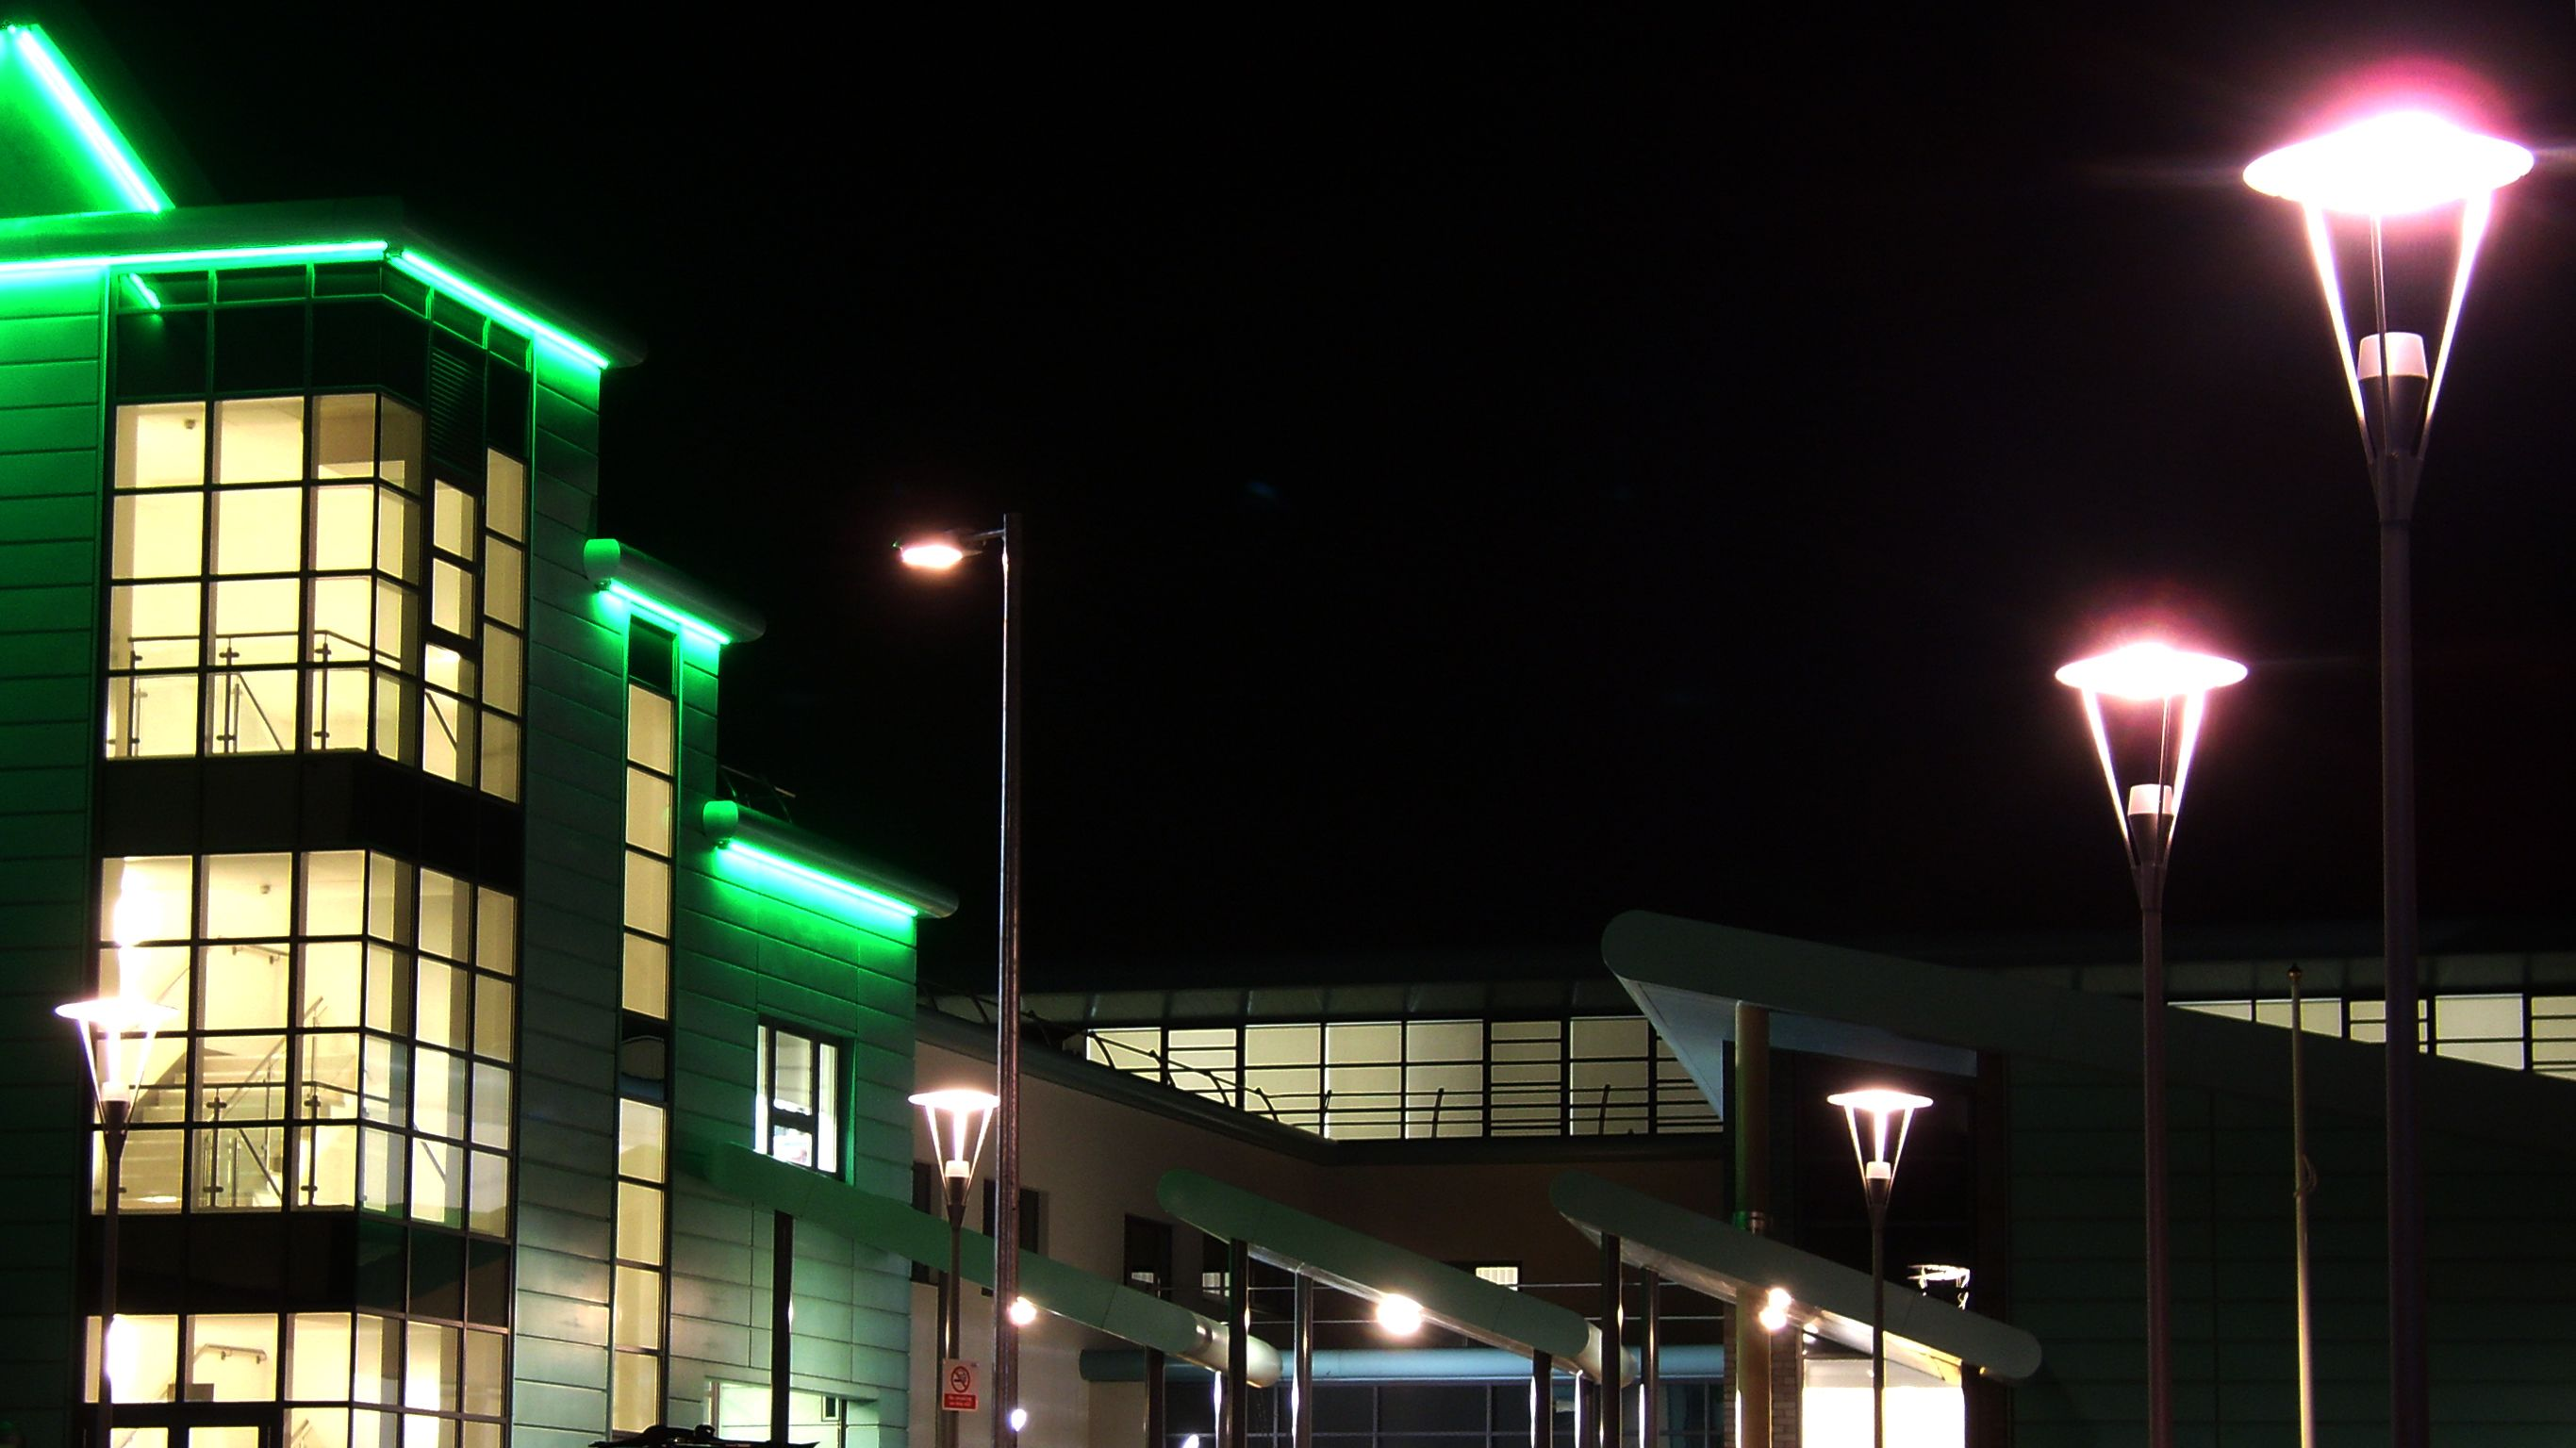 Selby Community Project exterior at night